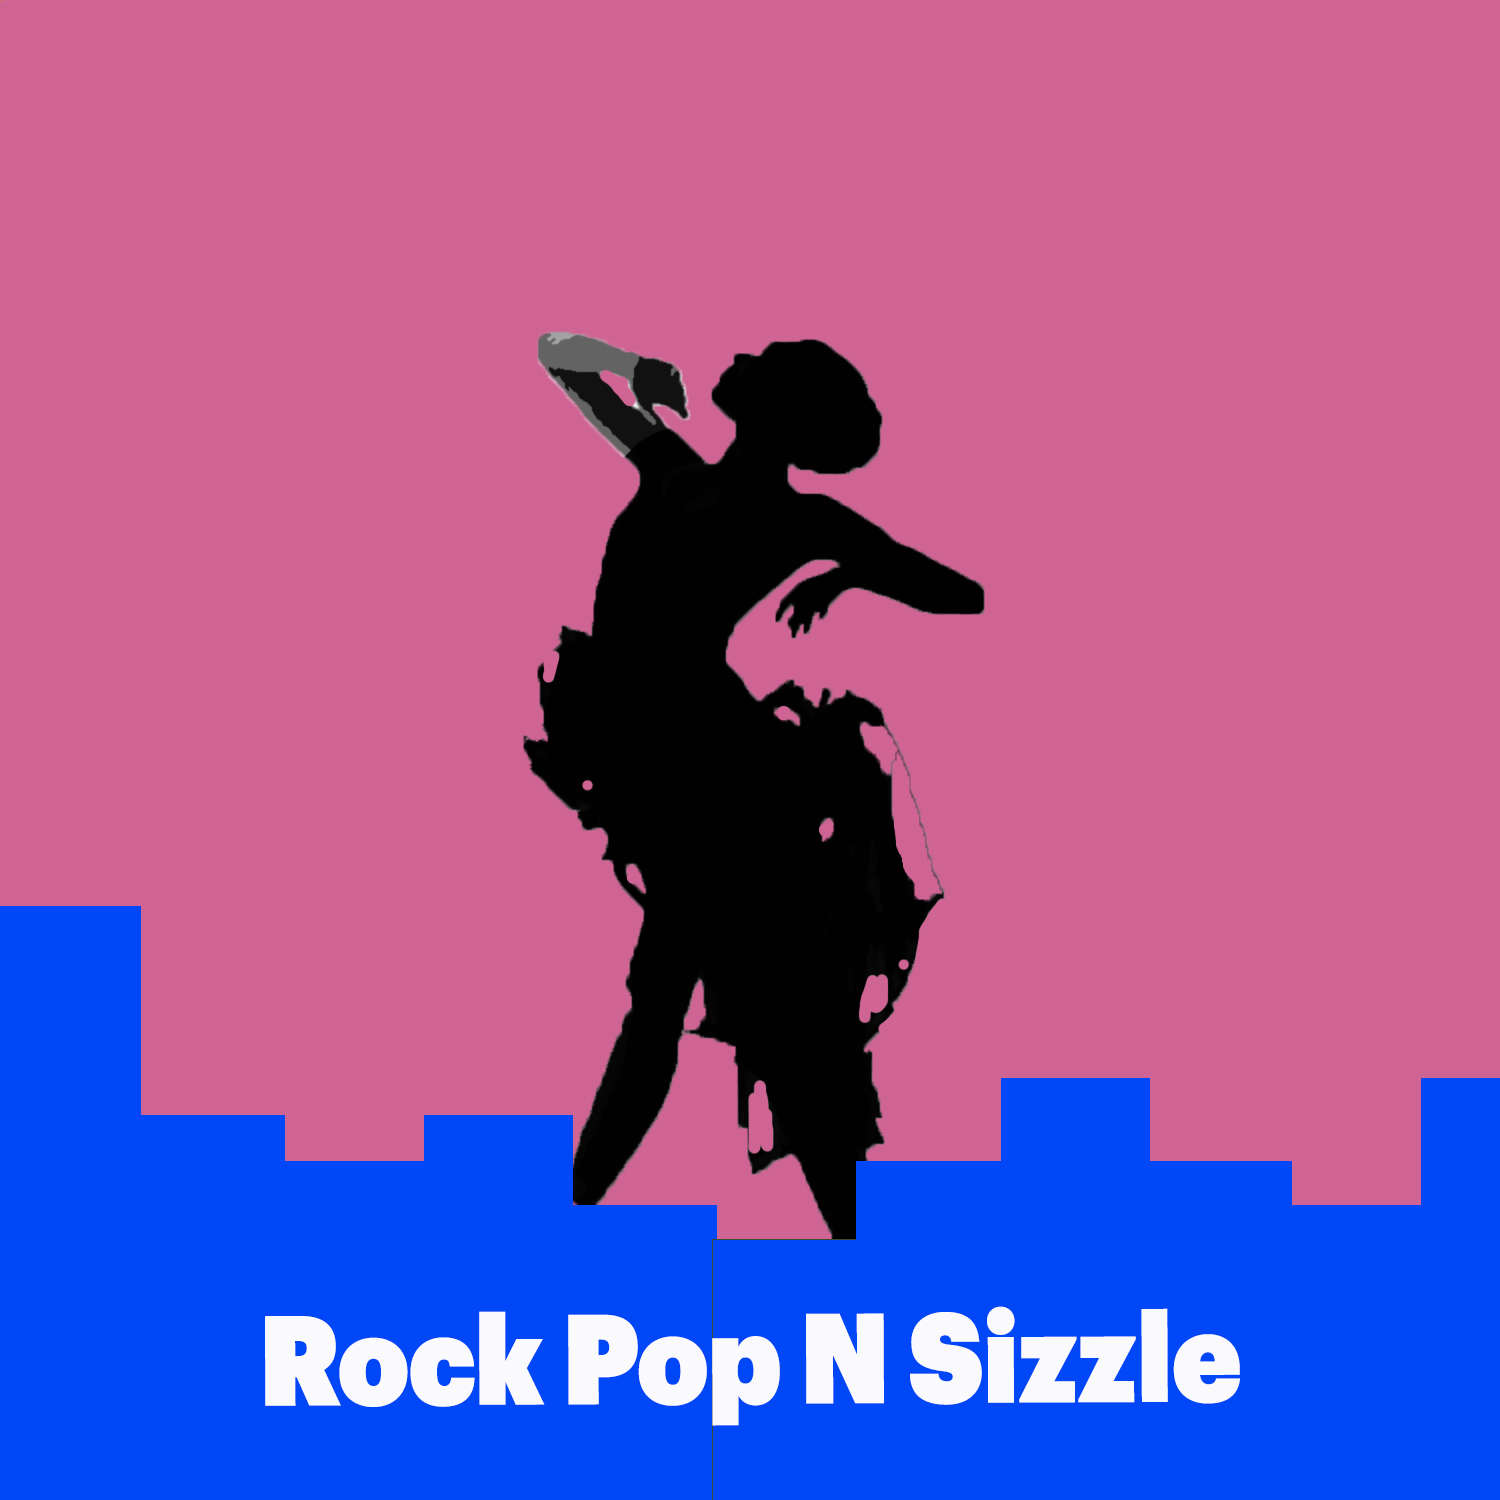 Rock, Pop and Sizzle,Songdew